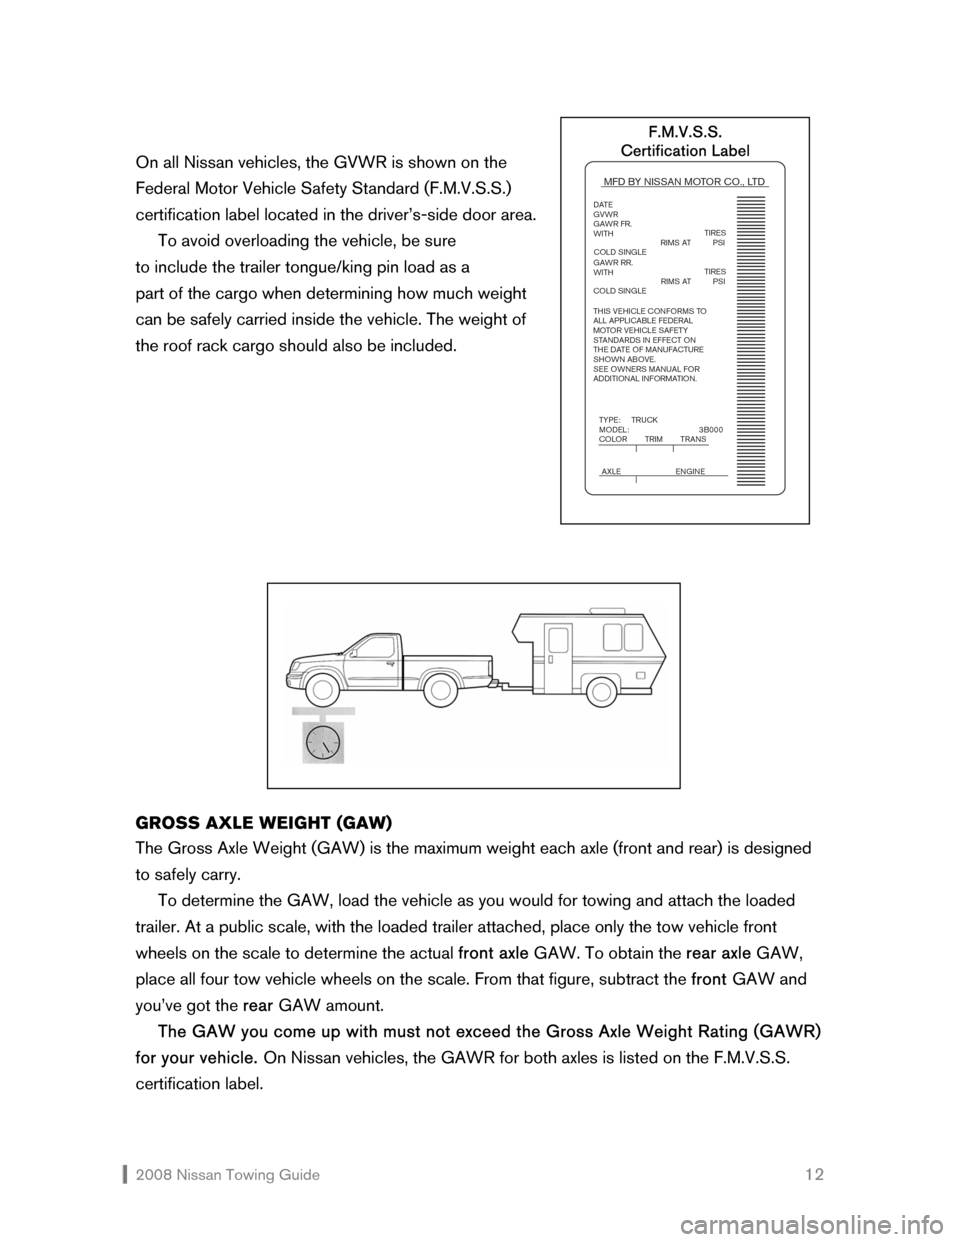 NISSAN ROGUE 2008 1.G Towing Guide, Page 13